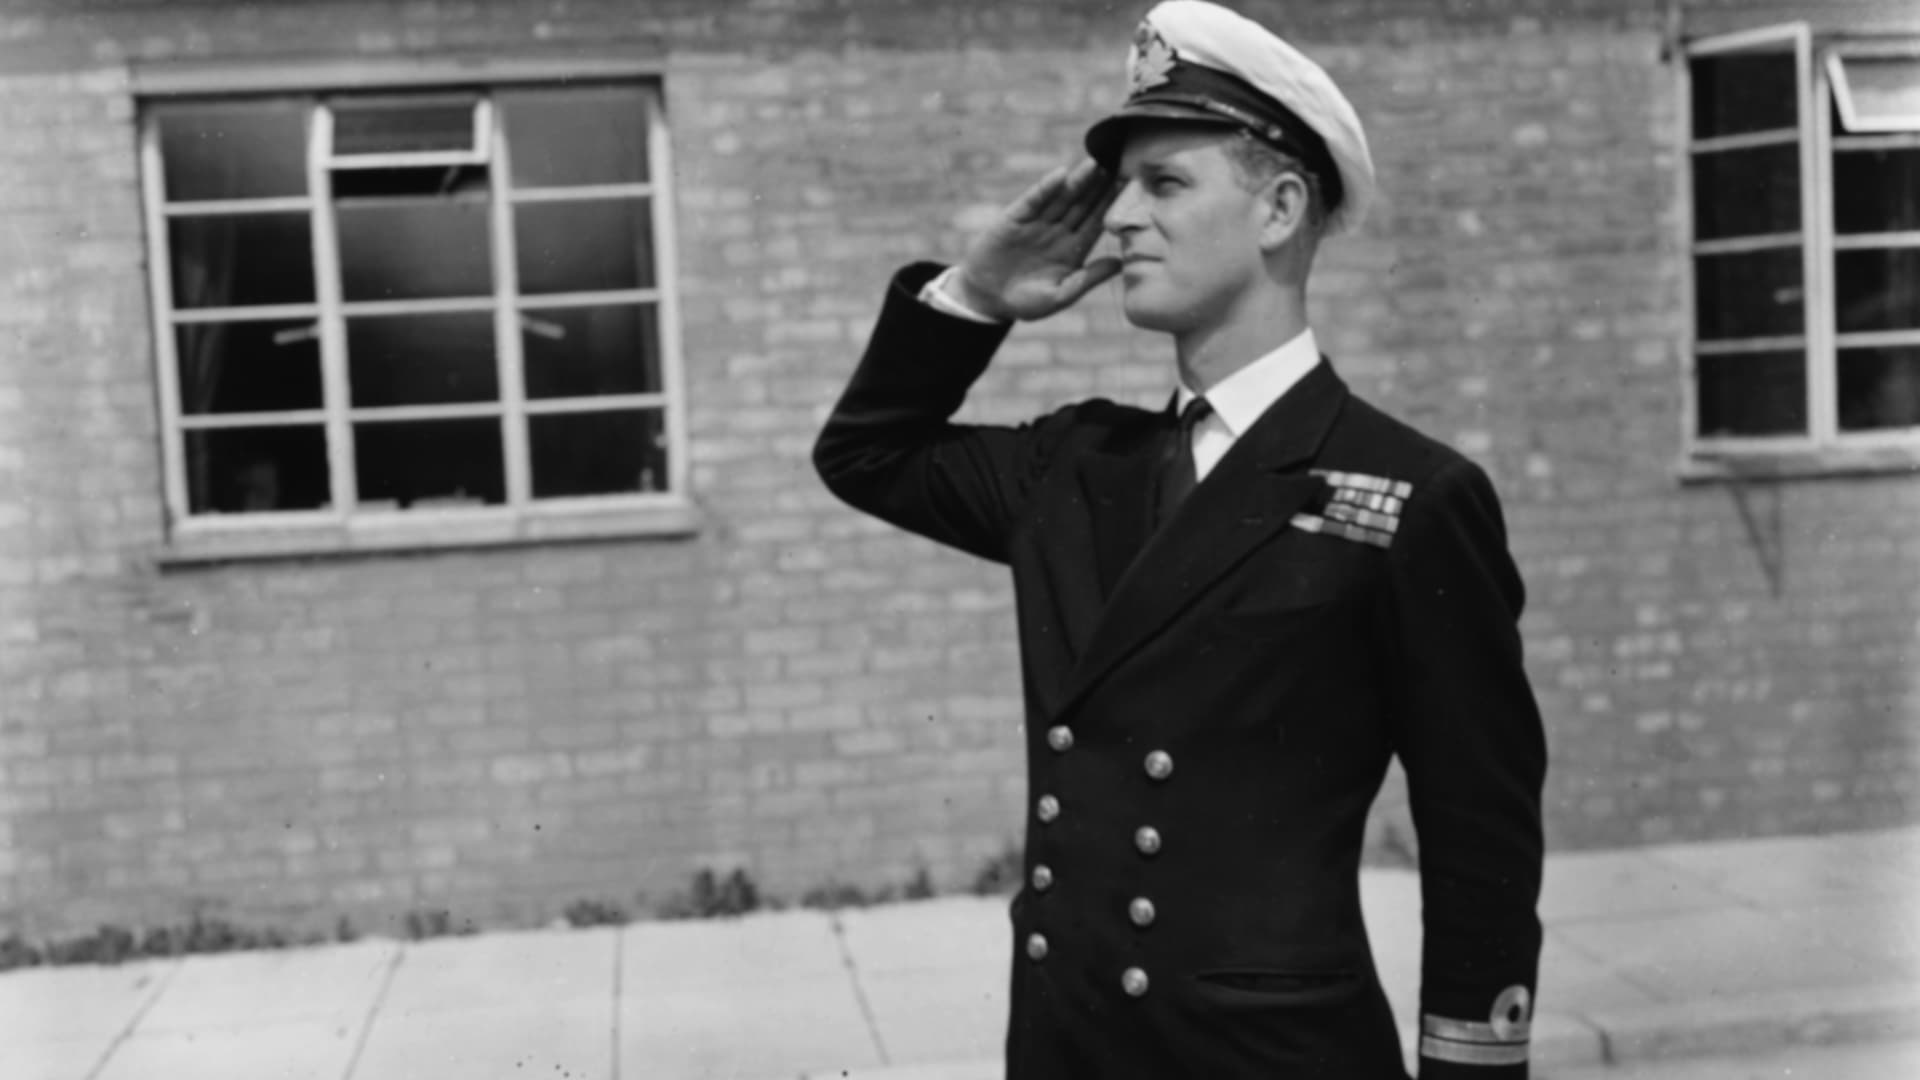 Lt. Philip Mountbatten, prior to his marriage to Princess Elizabeth, saluting as he resumes his attendance at the Royal Naval Officers School at Kingsmoor, Hawthorn, England, July 31, 1947.